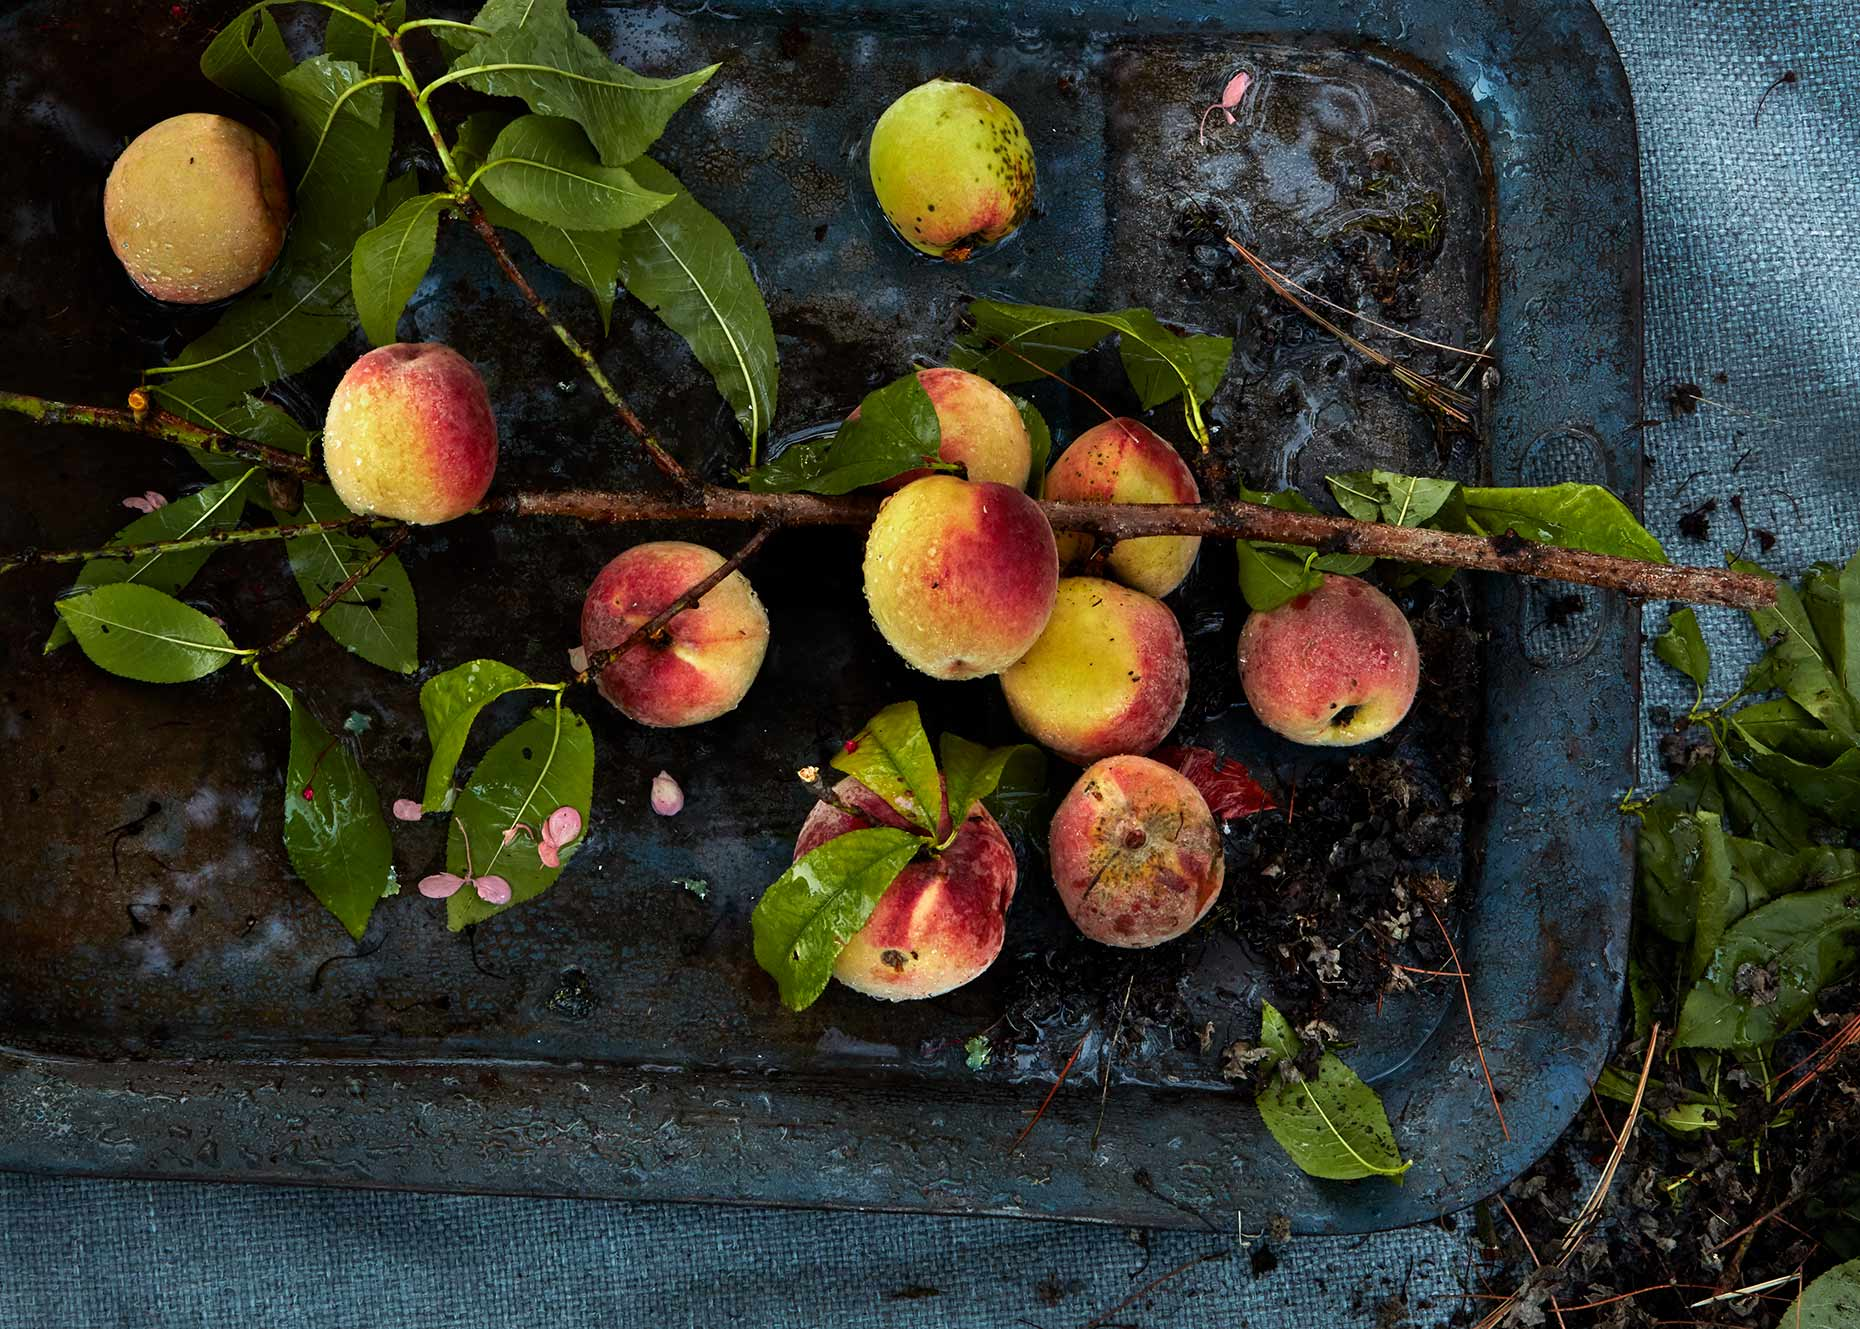 Peach branches shown on a rustic metal tray.